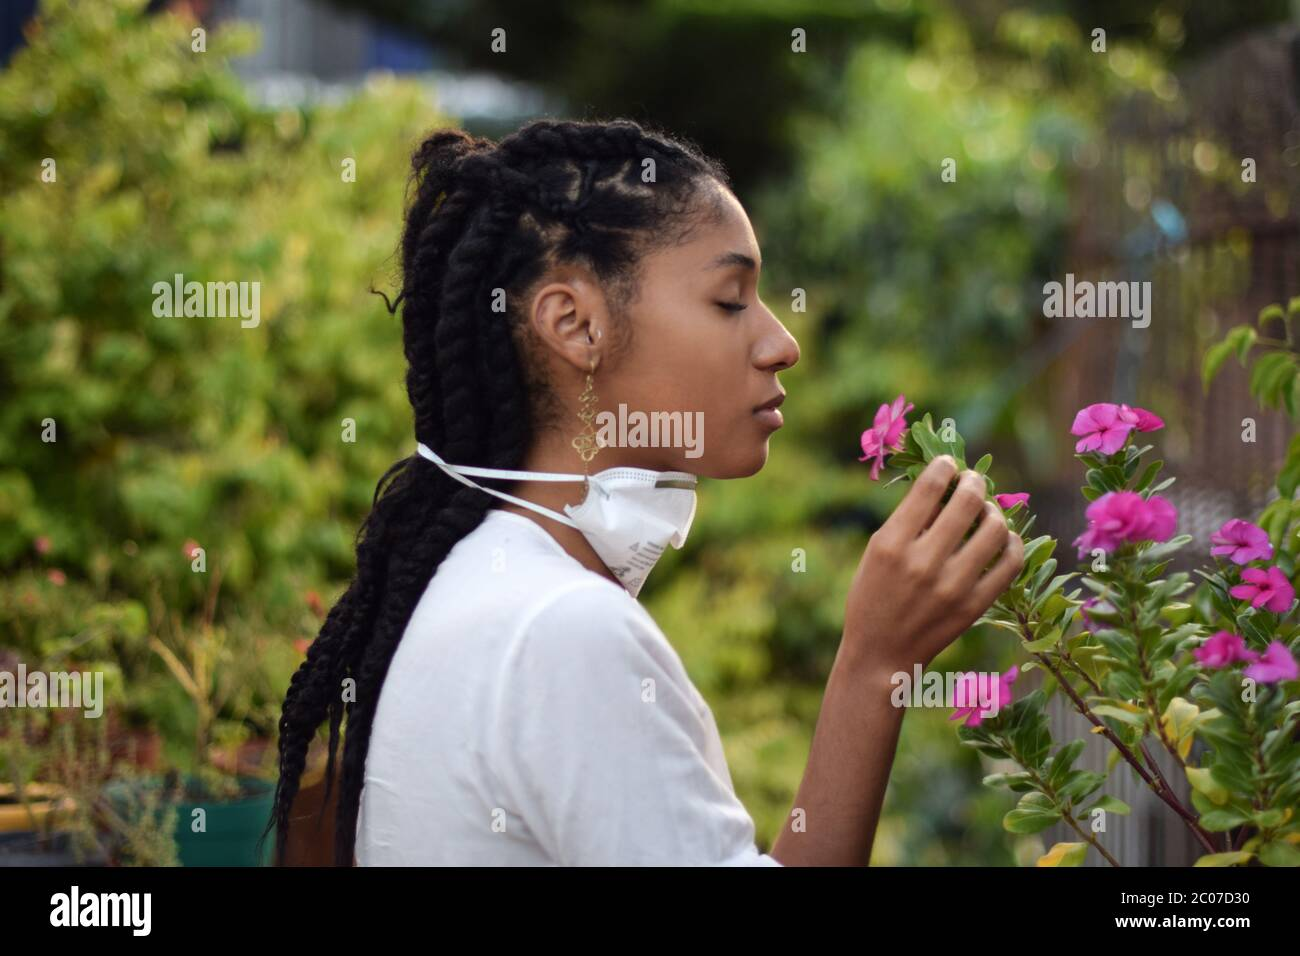 Young woman takes face mask off to smell the flowers Stock Photo